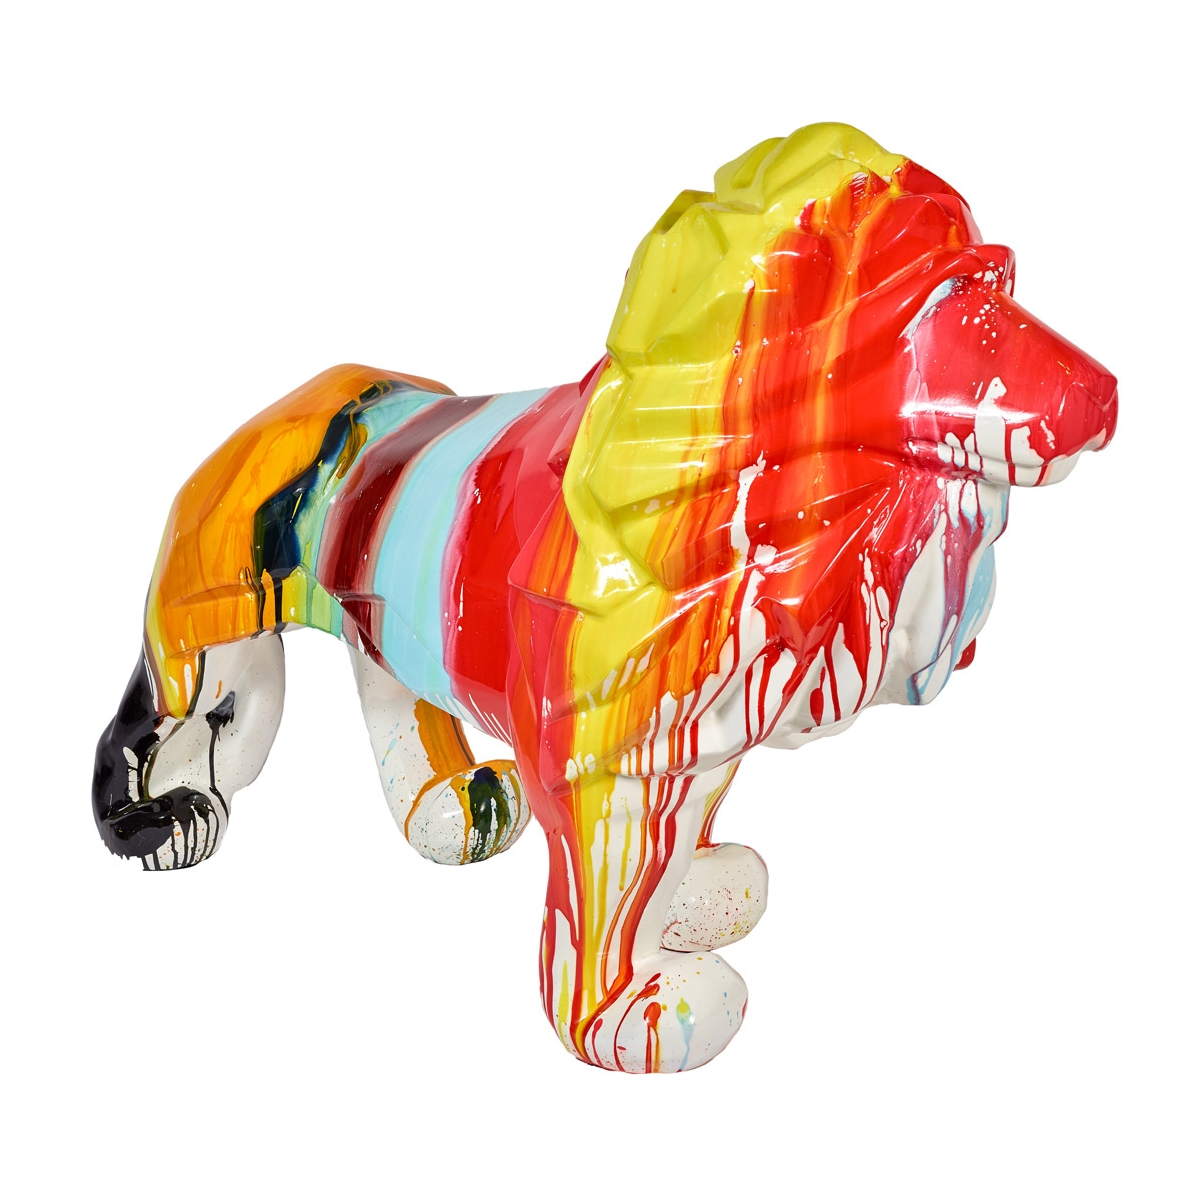 Statue lion design zendart design s lection zendart design - Grande statue decoration interieur ...